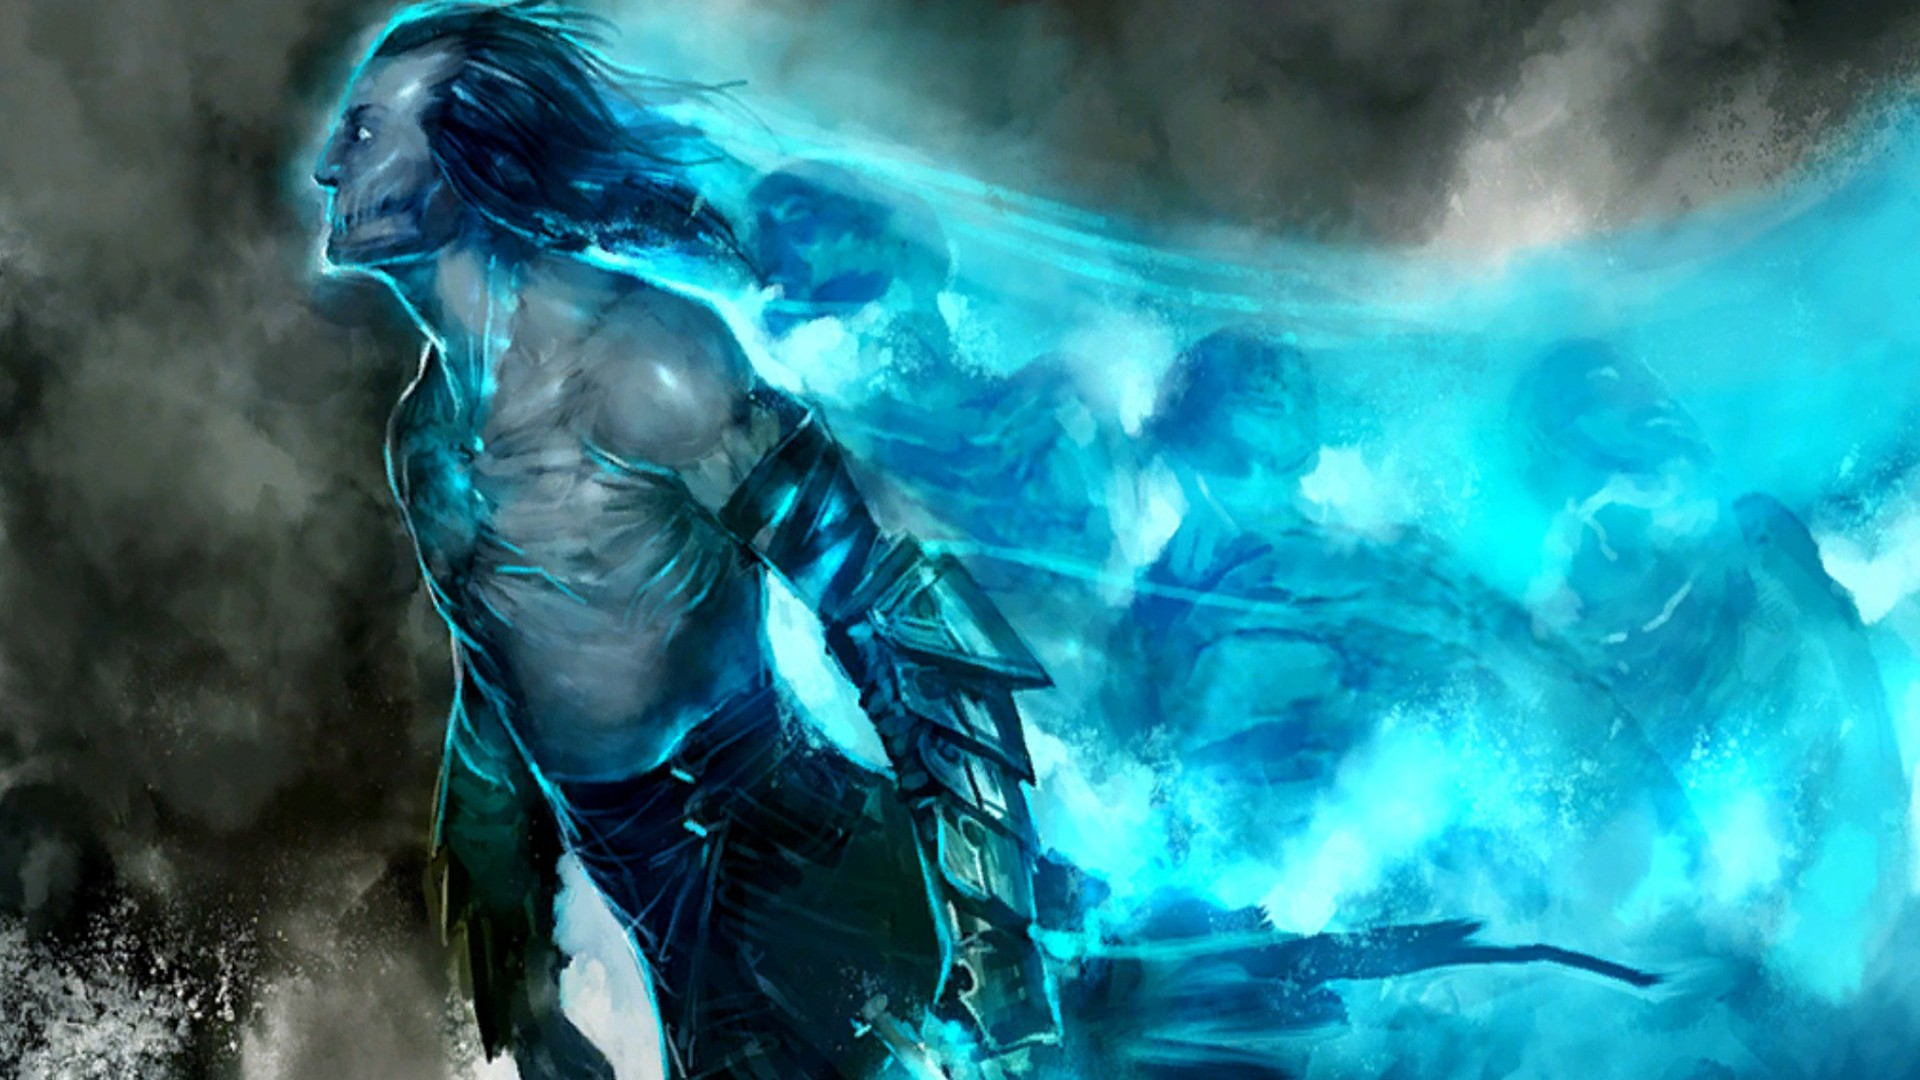 Guild Wars 2 Full HD Wallpaper And Background Image